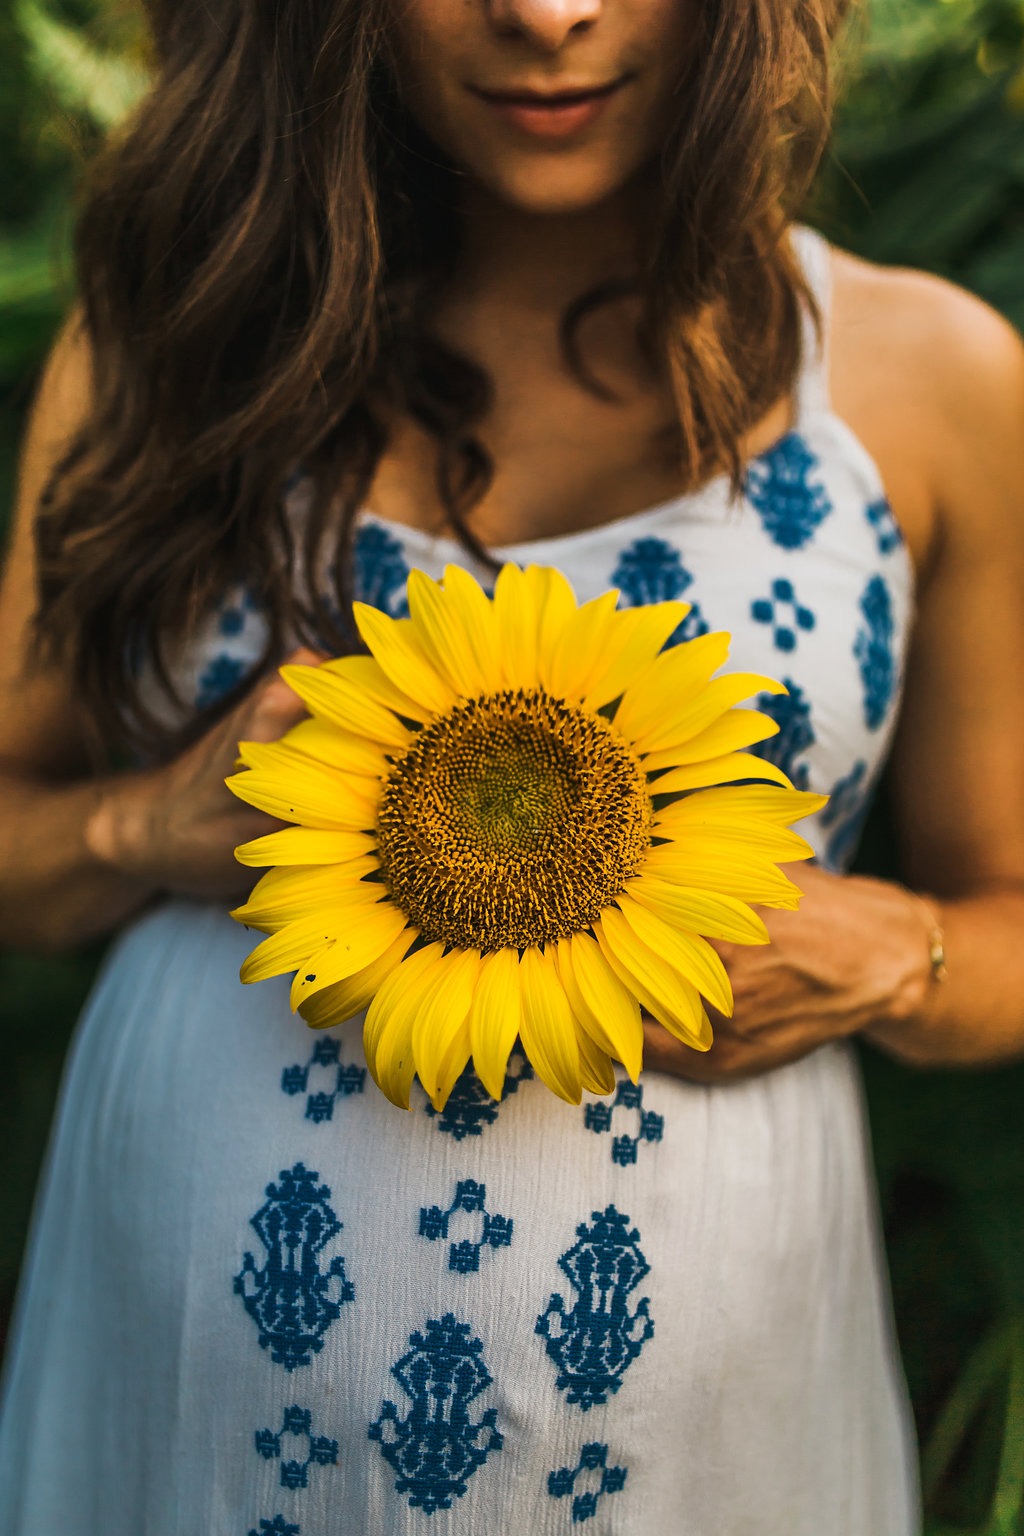 Sunflower-Maternity-Nashville-Tennessee-Field-Batey-Farms-6